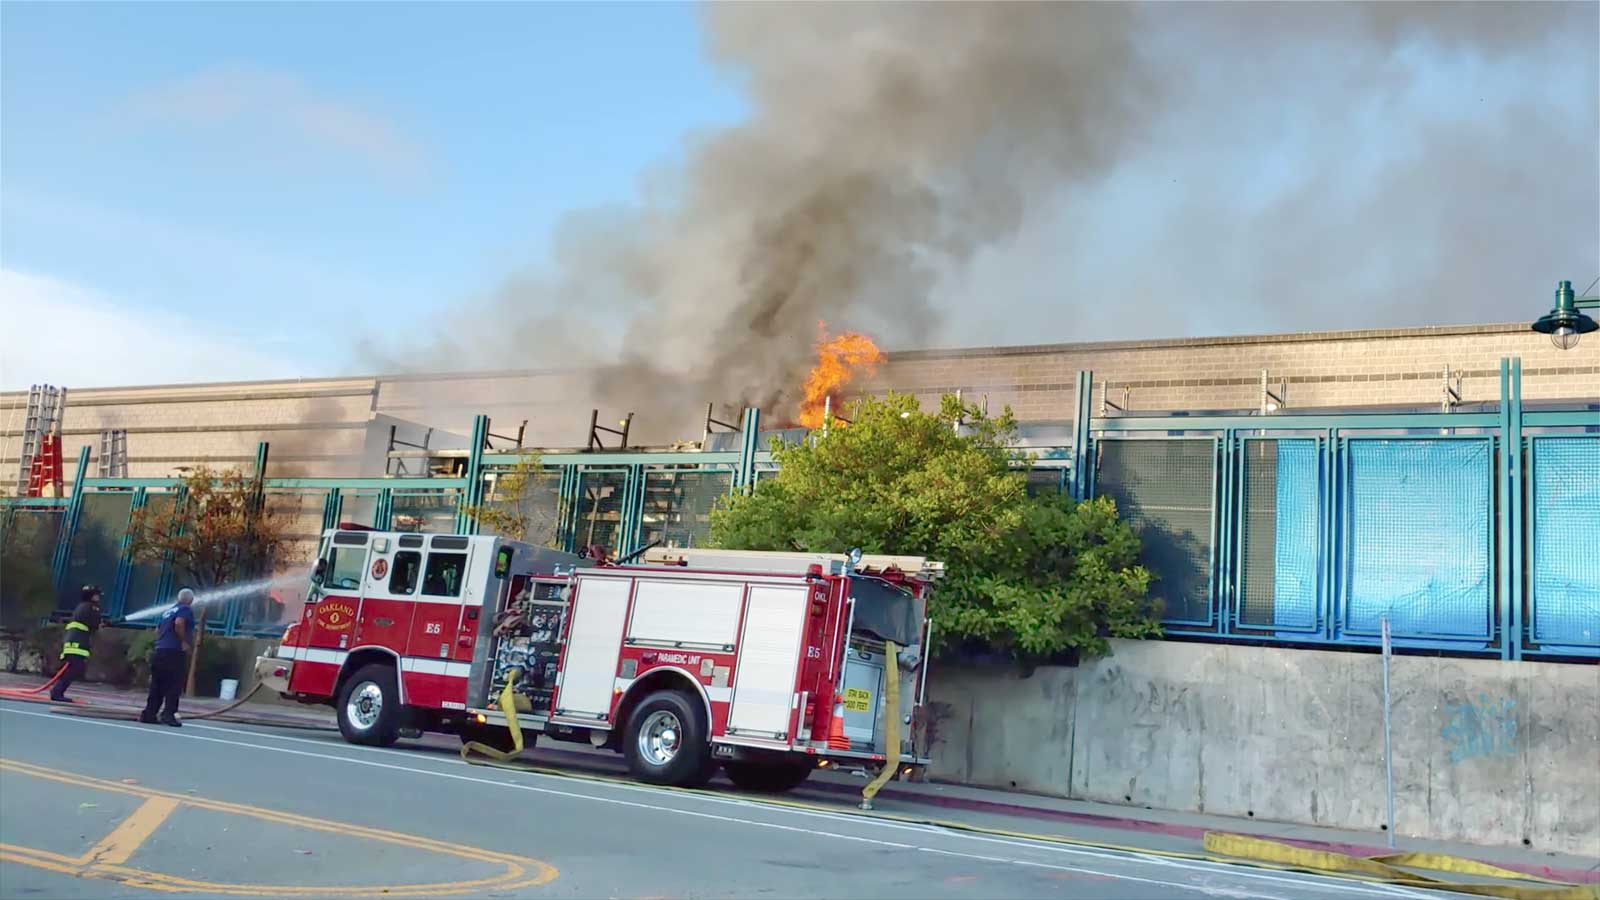 20' Ladder Home Depot Fire At Emeryville Home Depot Storage Area Causes 160 000